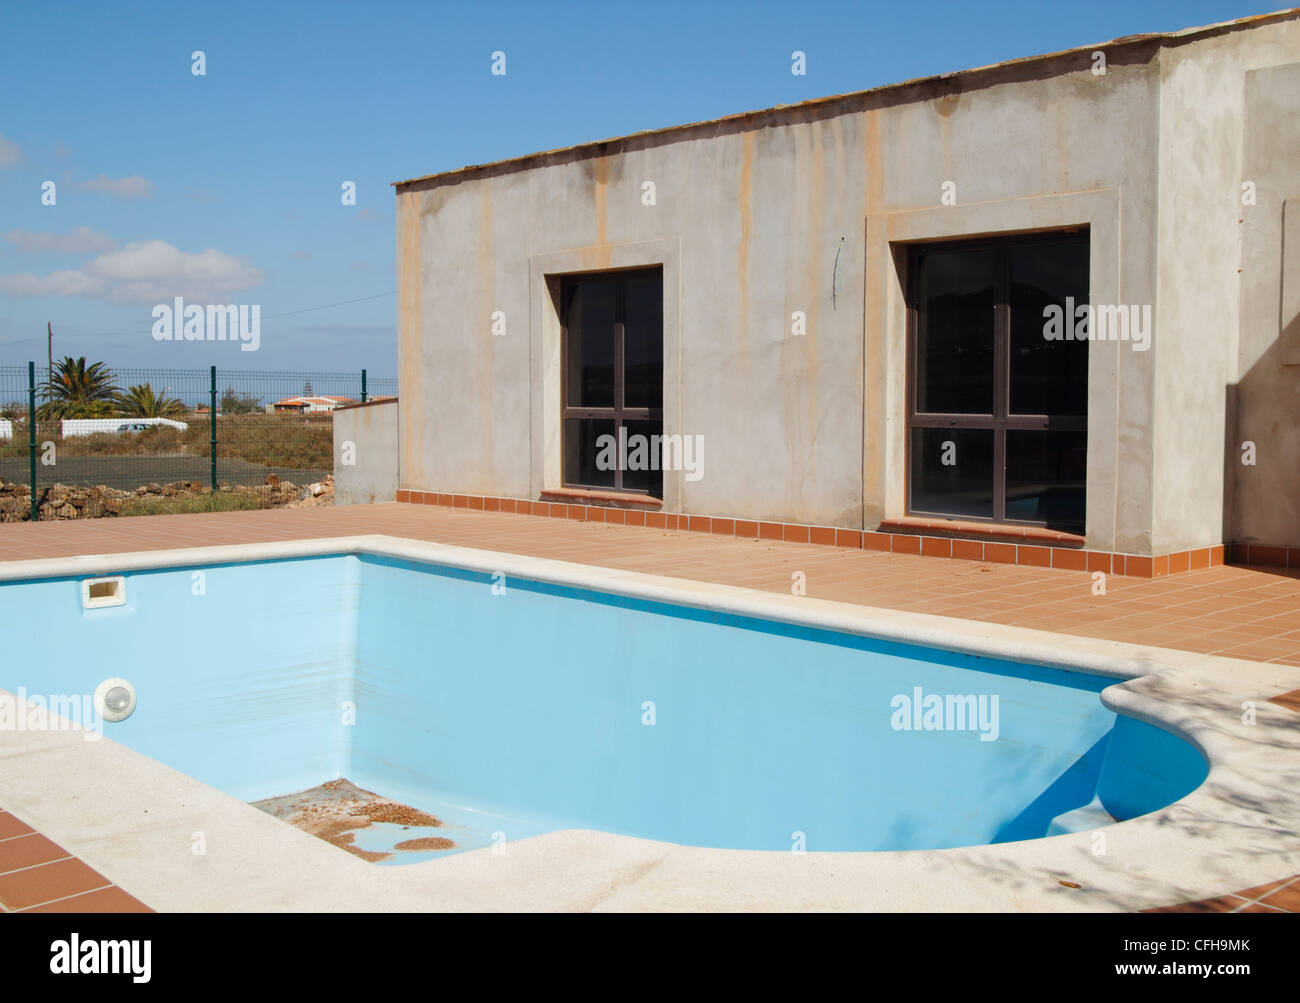 Empty Swimming Pool Next To House At Unfinished Abandoned